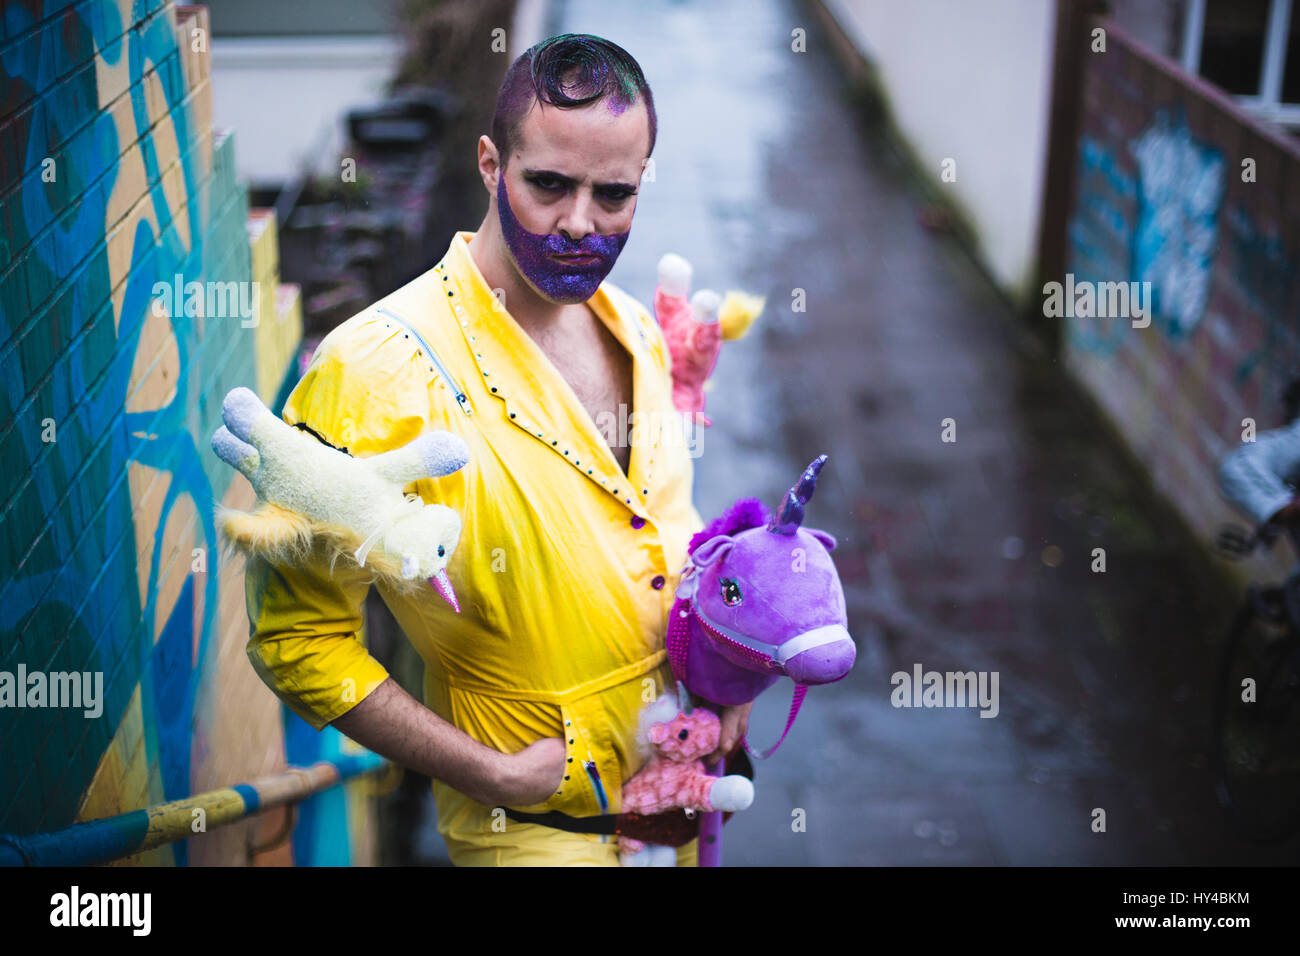 UNITED KINGDOM, WALES. March 15 2017. Boylesque dancer, Ernie Sparkles talks to We Are Cardiff about his love of - Stock Image